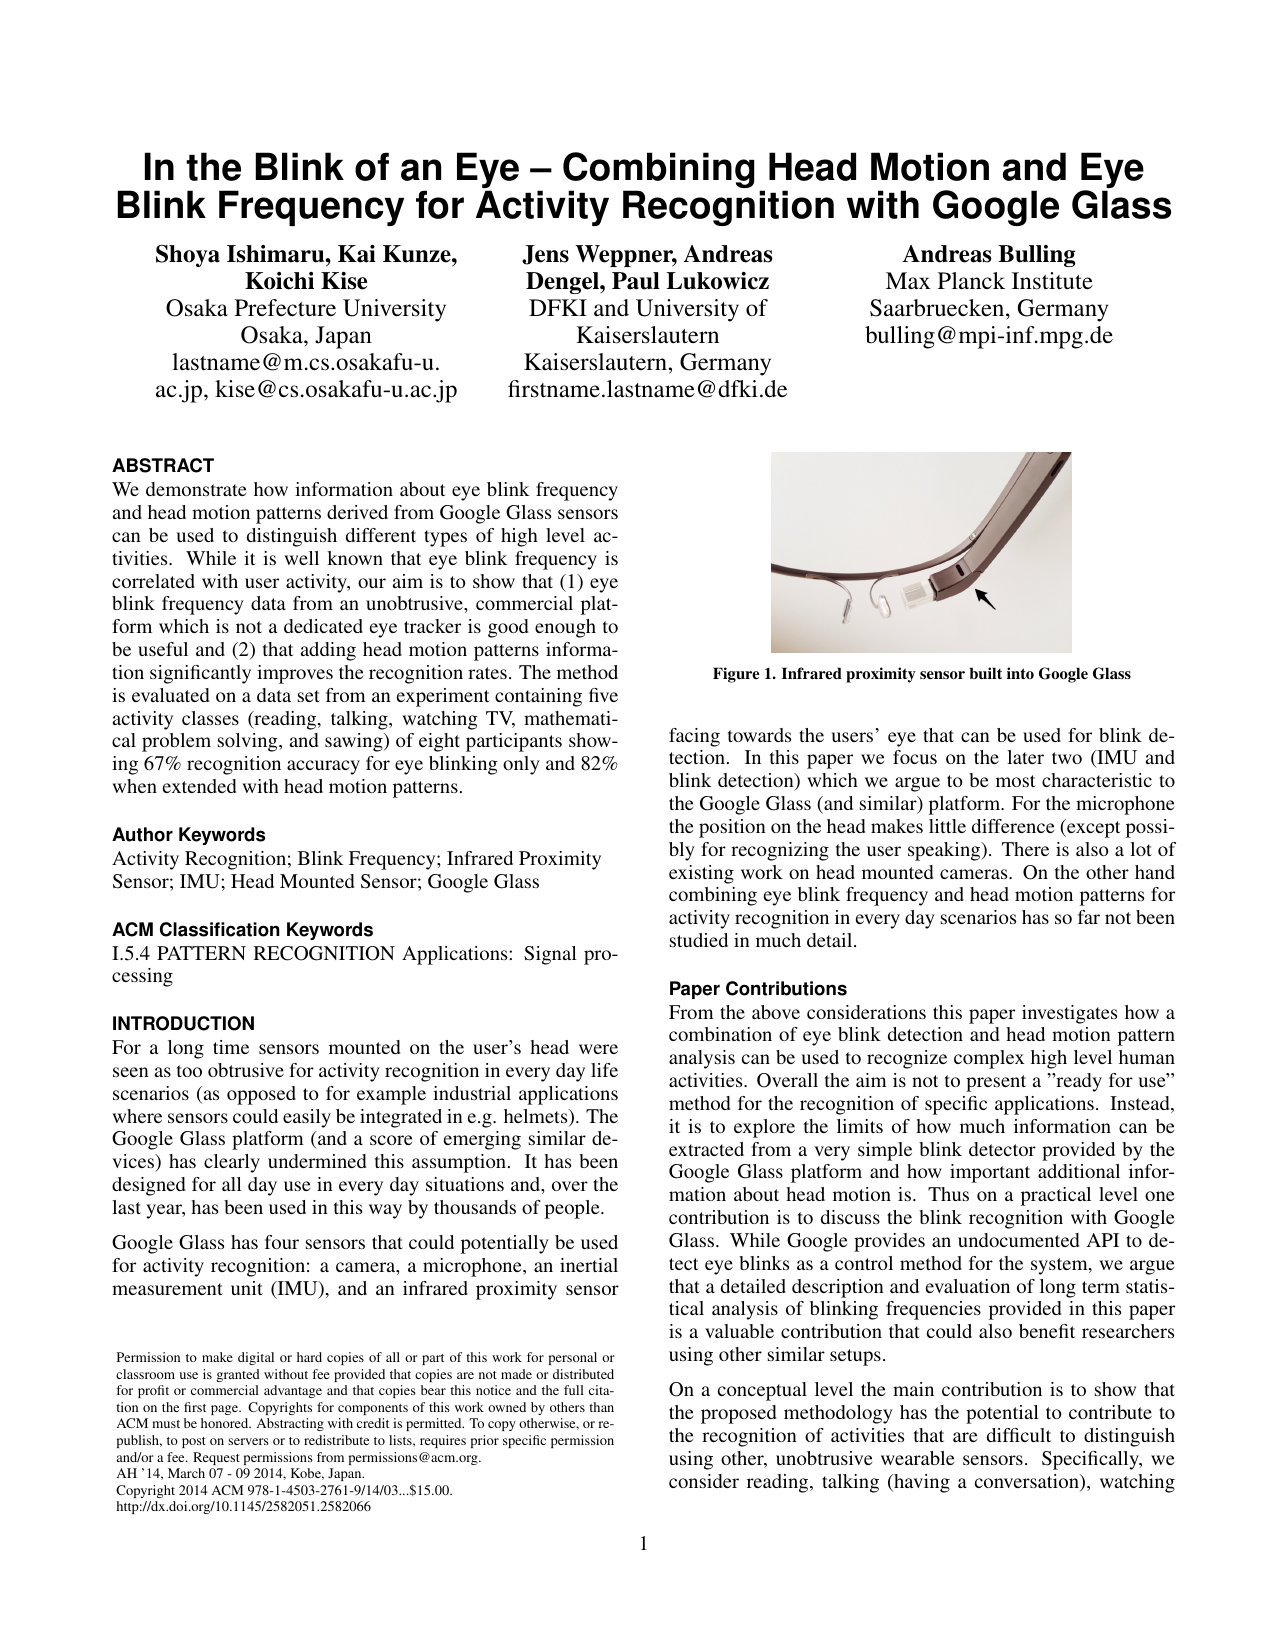 In the Blink of an Eye: Combining Head Motion and Eye Blink Frequency for Activity Recognition with Google Glass